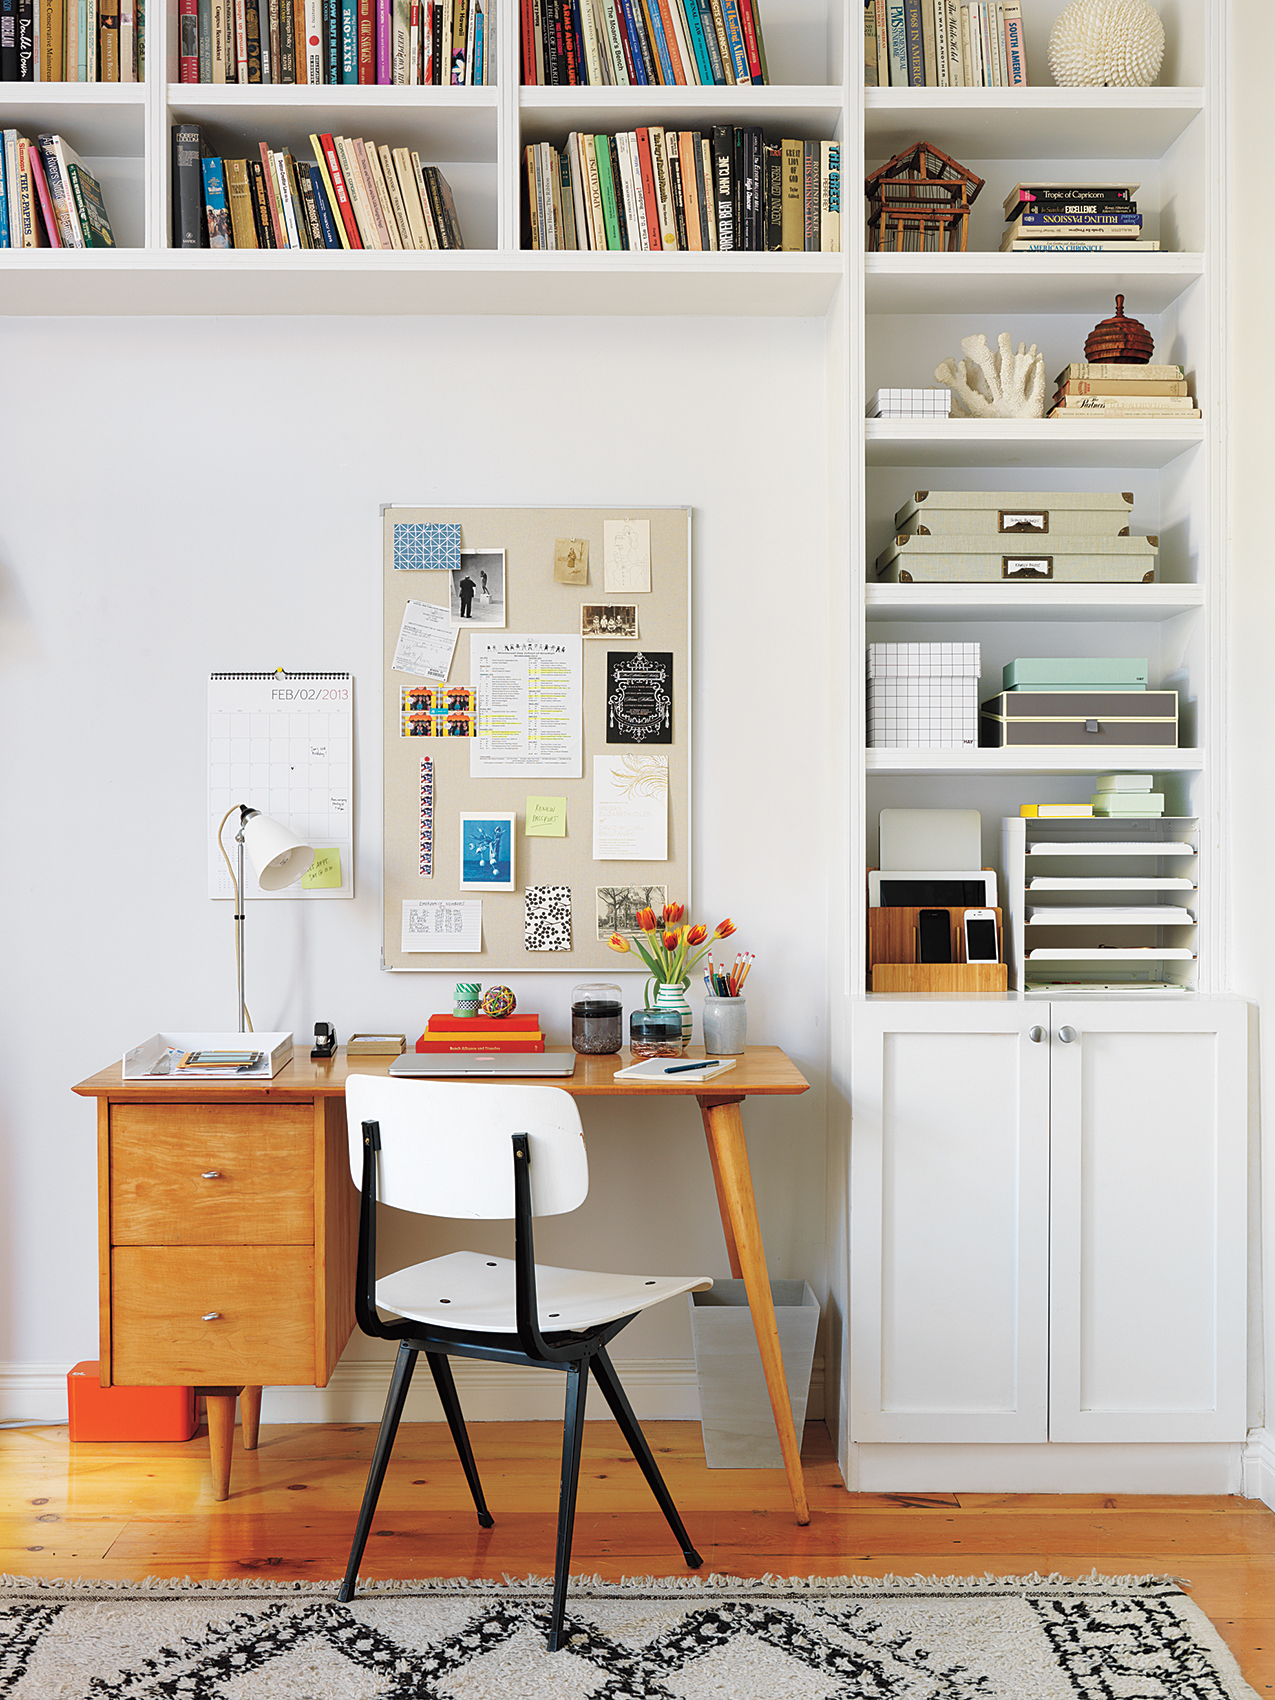 Desk with white chair, bulletin board, wall-shelving